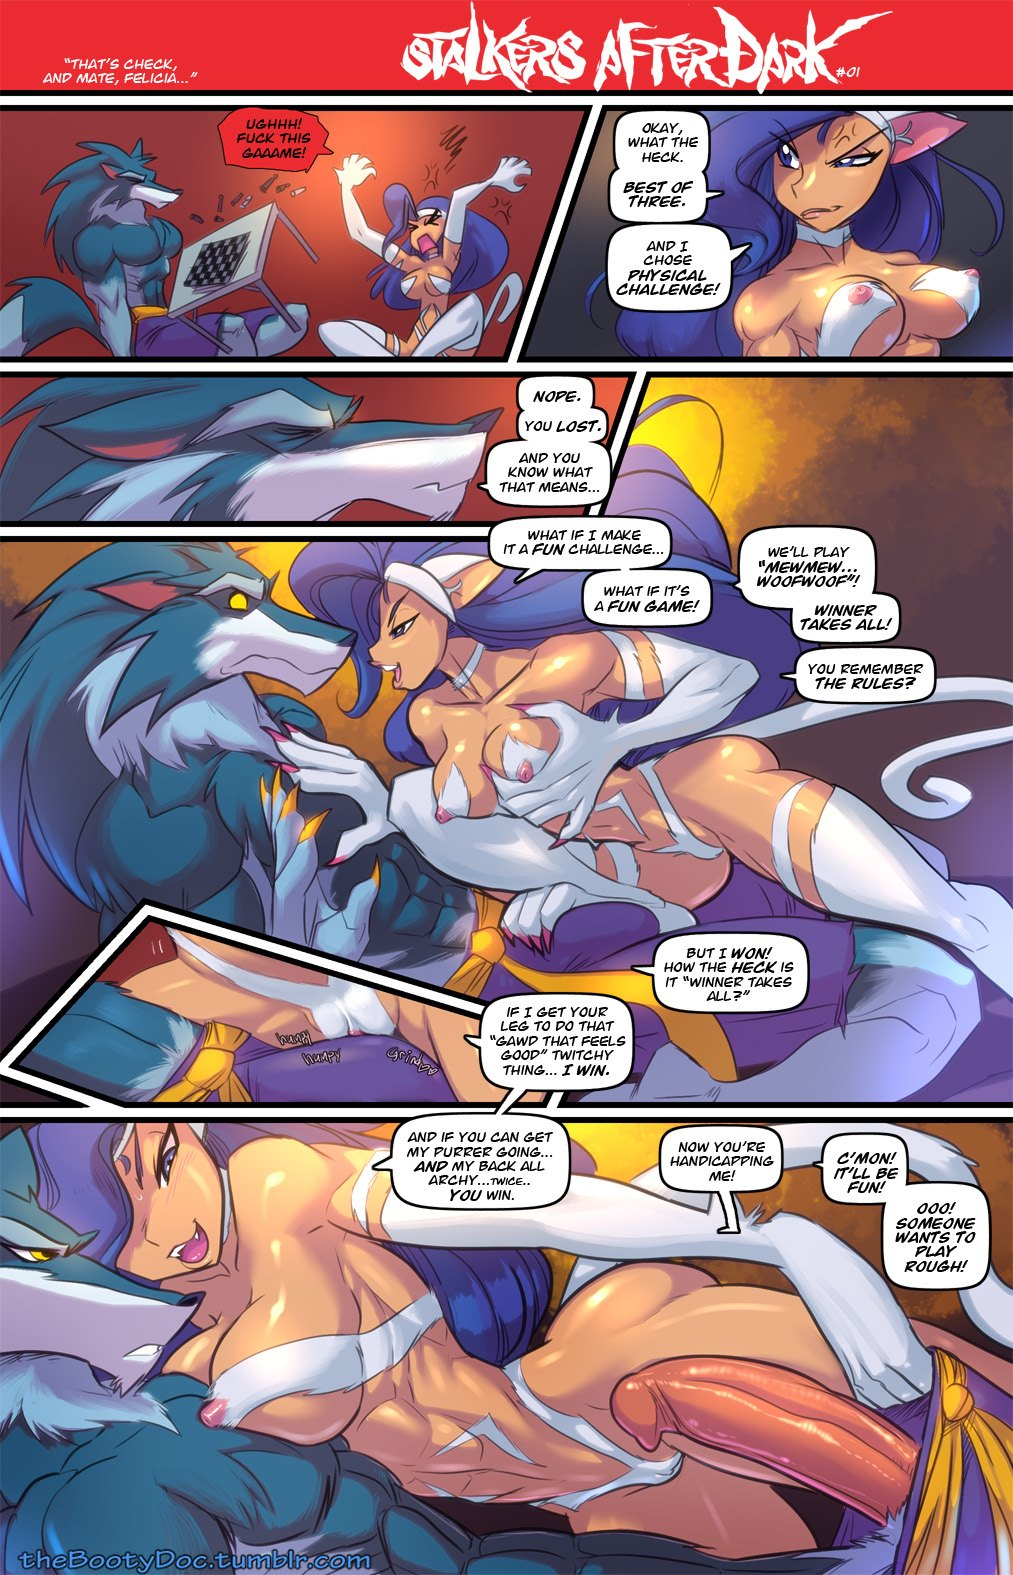 Fred Perry- DarkStalkers Afterdark porn comics 8 muses